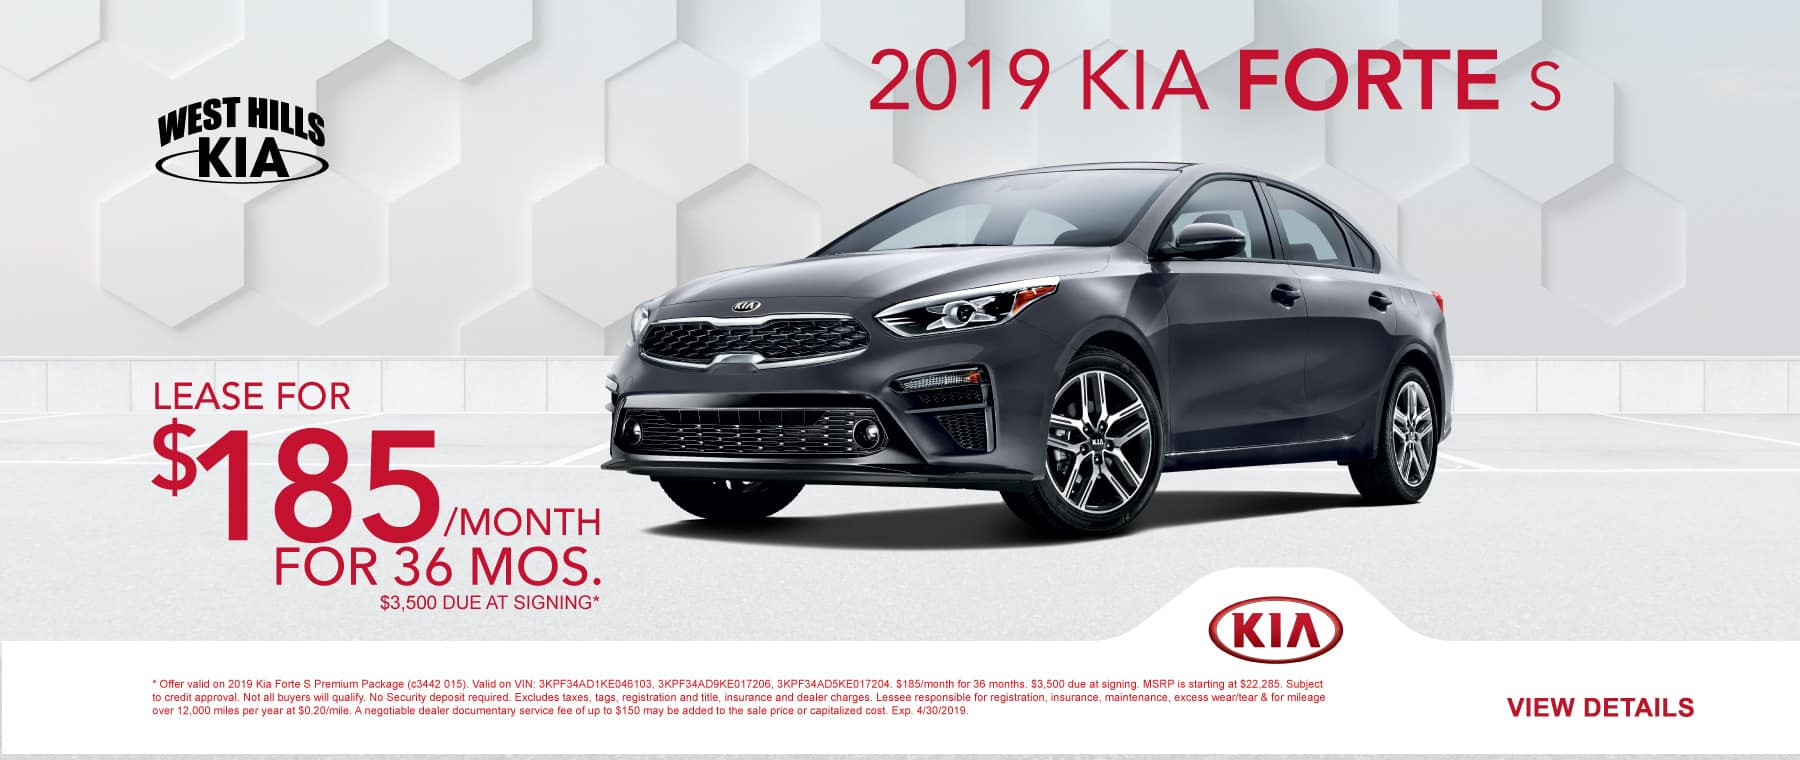 019 Kia Forte S (featured vehicle) $185/month for 36 months  $3,500 Due at Signing   Offer valid on 2019 Kia Forte S Premium Package (c3442 015). Valid on VIN: 3KPF34AD1KE046103, 3KPF34AD9KE017206, 3KPF34AD5KE017204. $185/month for 36 months. $3,500 due at signing. MSRP is starting at $22,285. Subject to credit approval. Not all buyers will qualify. No Security deposit required. Excludes taxes, tags, registration and title, insurance and dealer charges. Lessee responsible for registration, insurance, maintenance, excess wear/tear & for mileage over 12,000 miles per year at $0.20/mile. A negotiable dealer documentary service fee of up to $150 may be added to the sale price or capitalized cost. Exp. 4/30/2019.